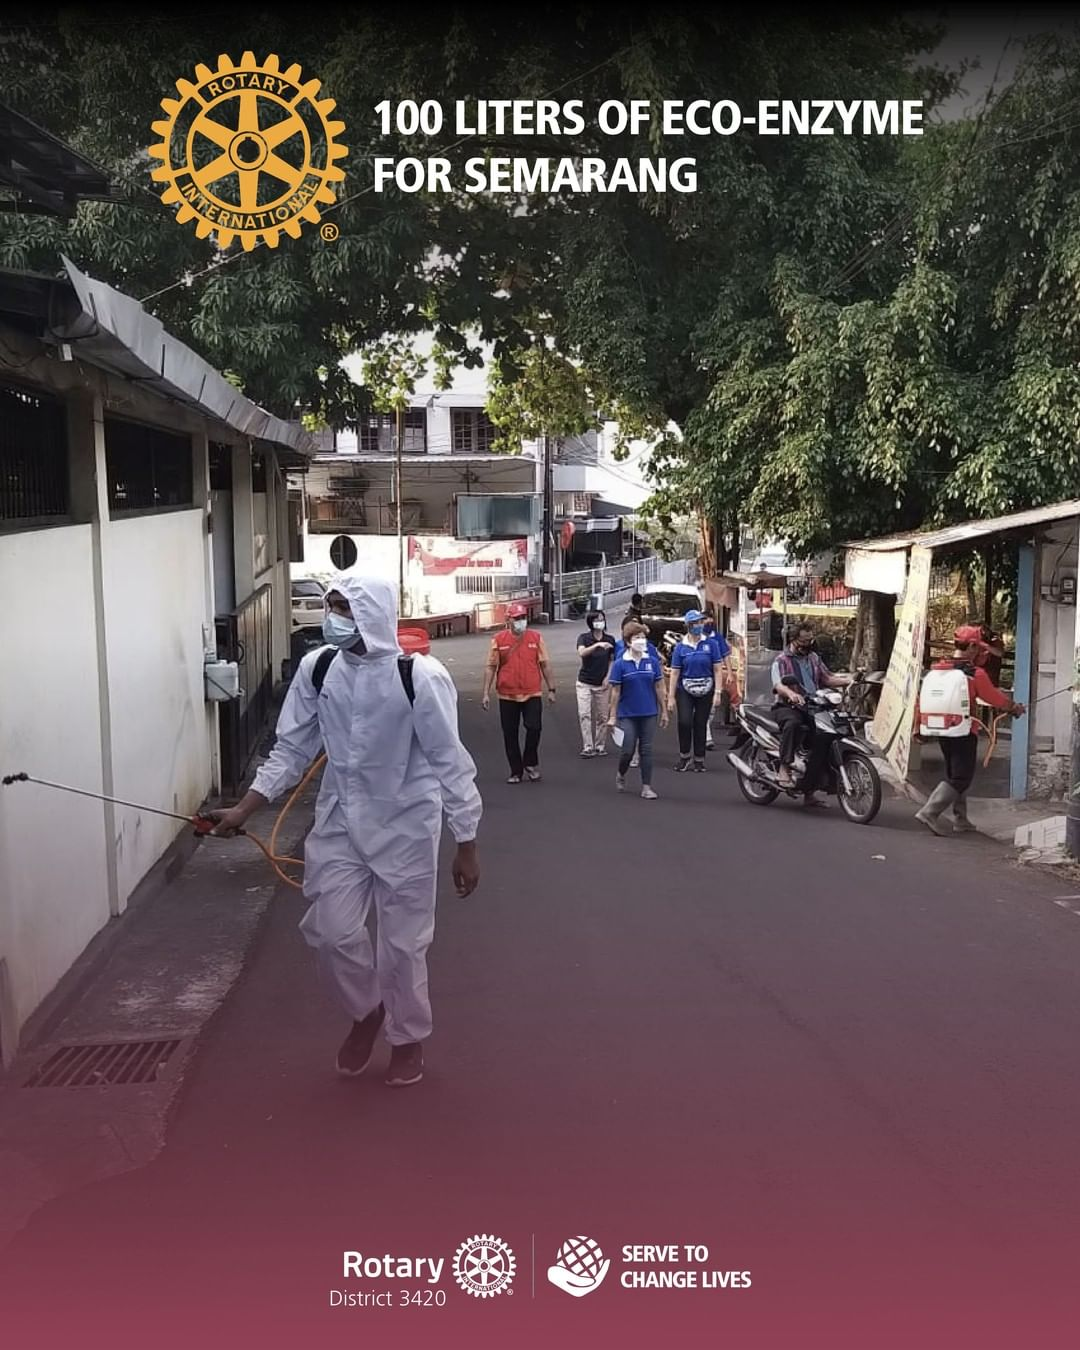 100 Liters of Eco-Enzyme for Semarang